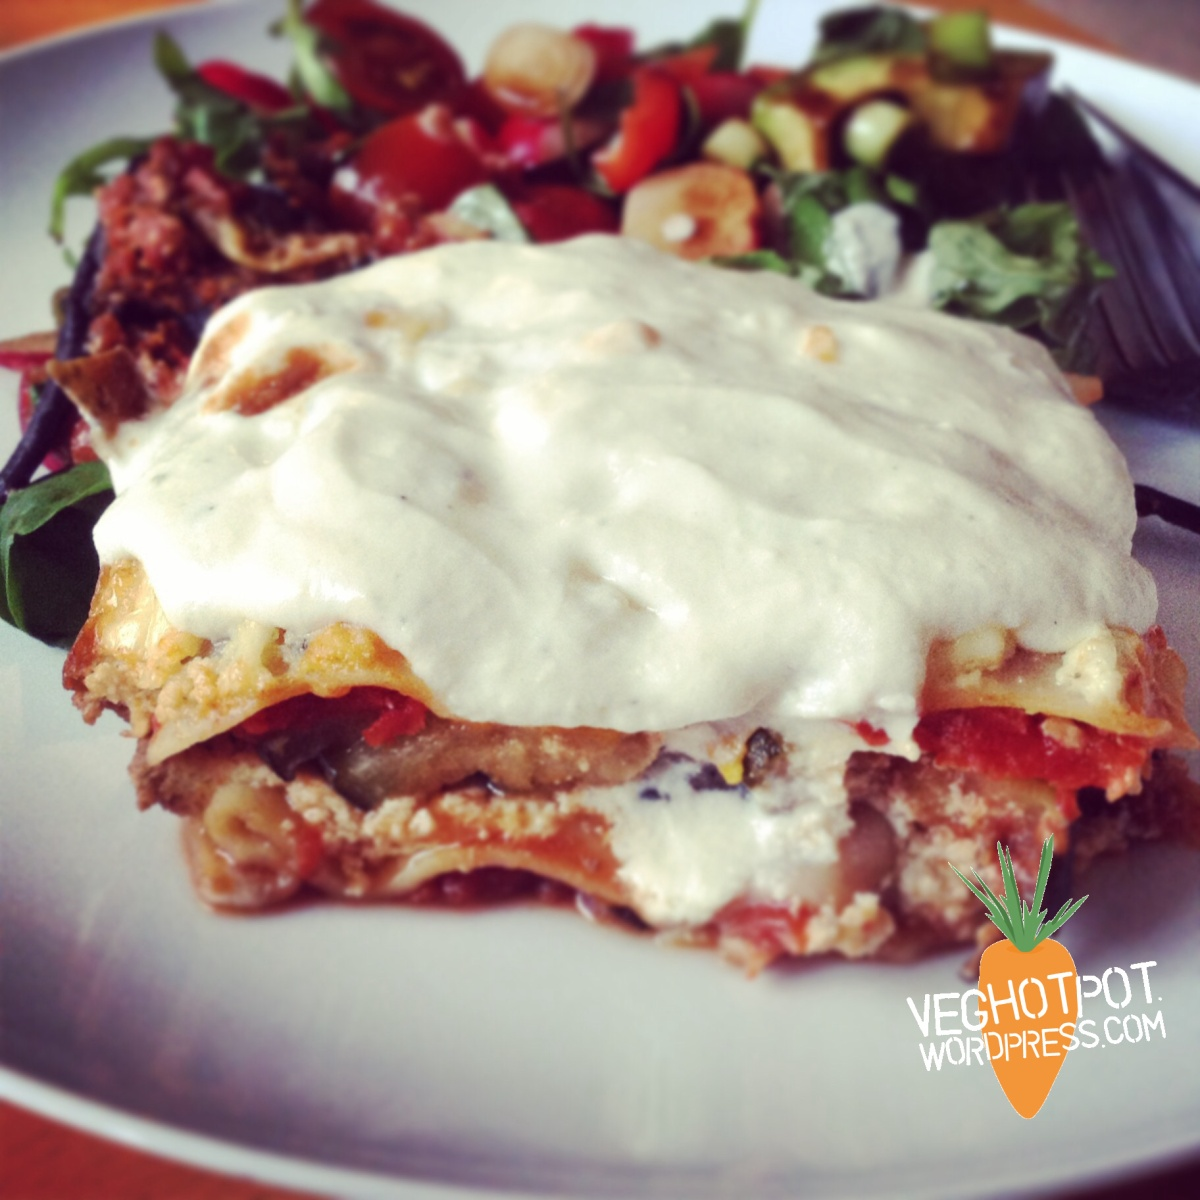 Vegan Roasted Vegetable Lasagna with a Tofu White Sauce